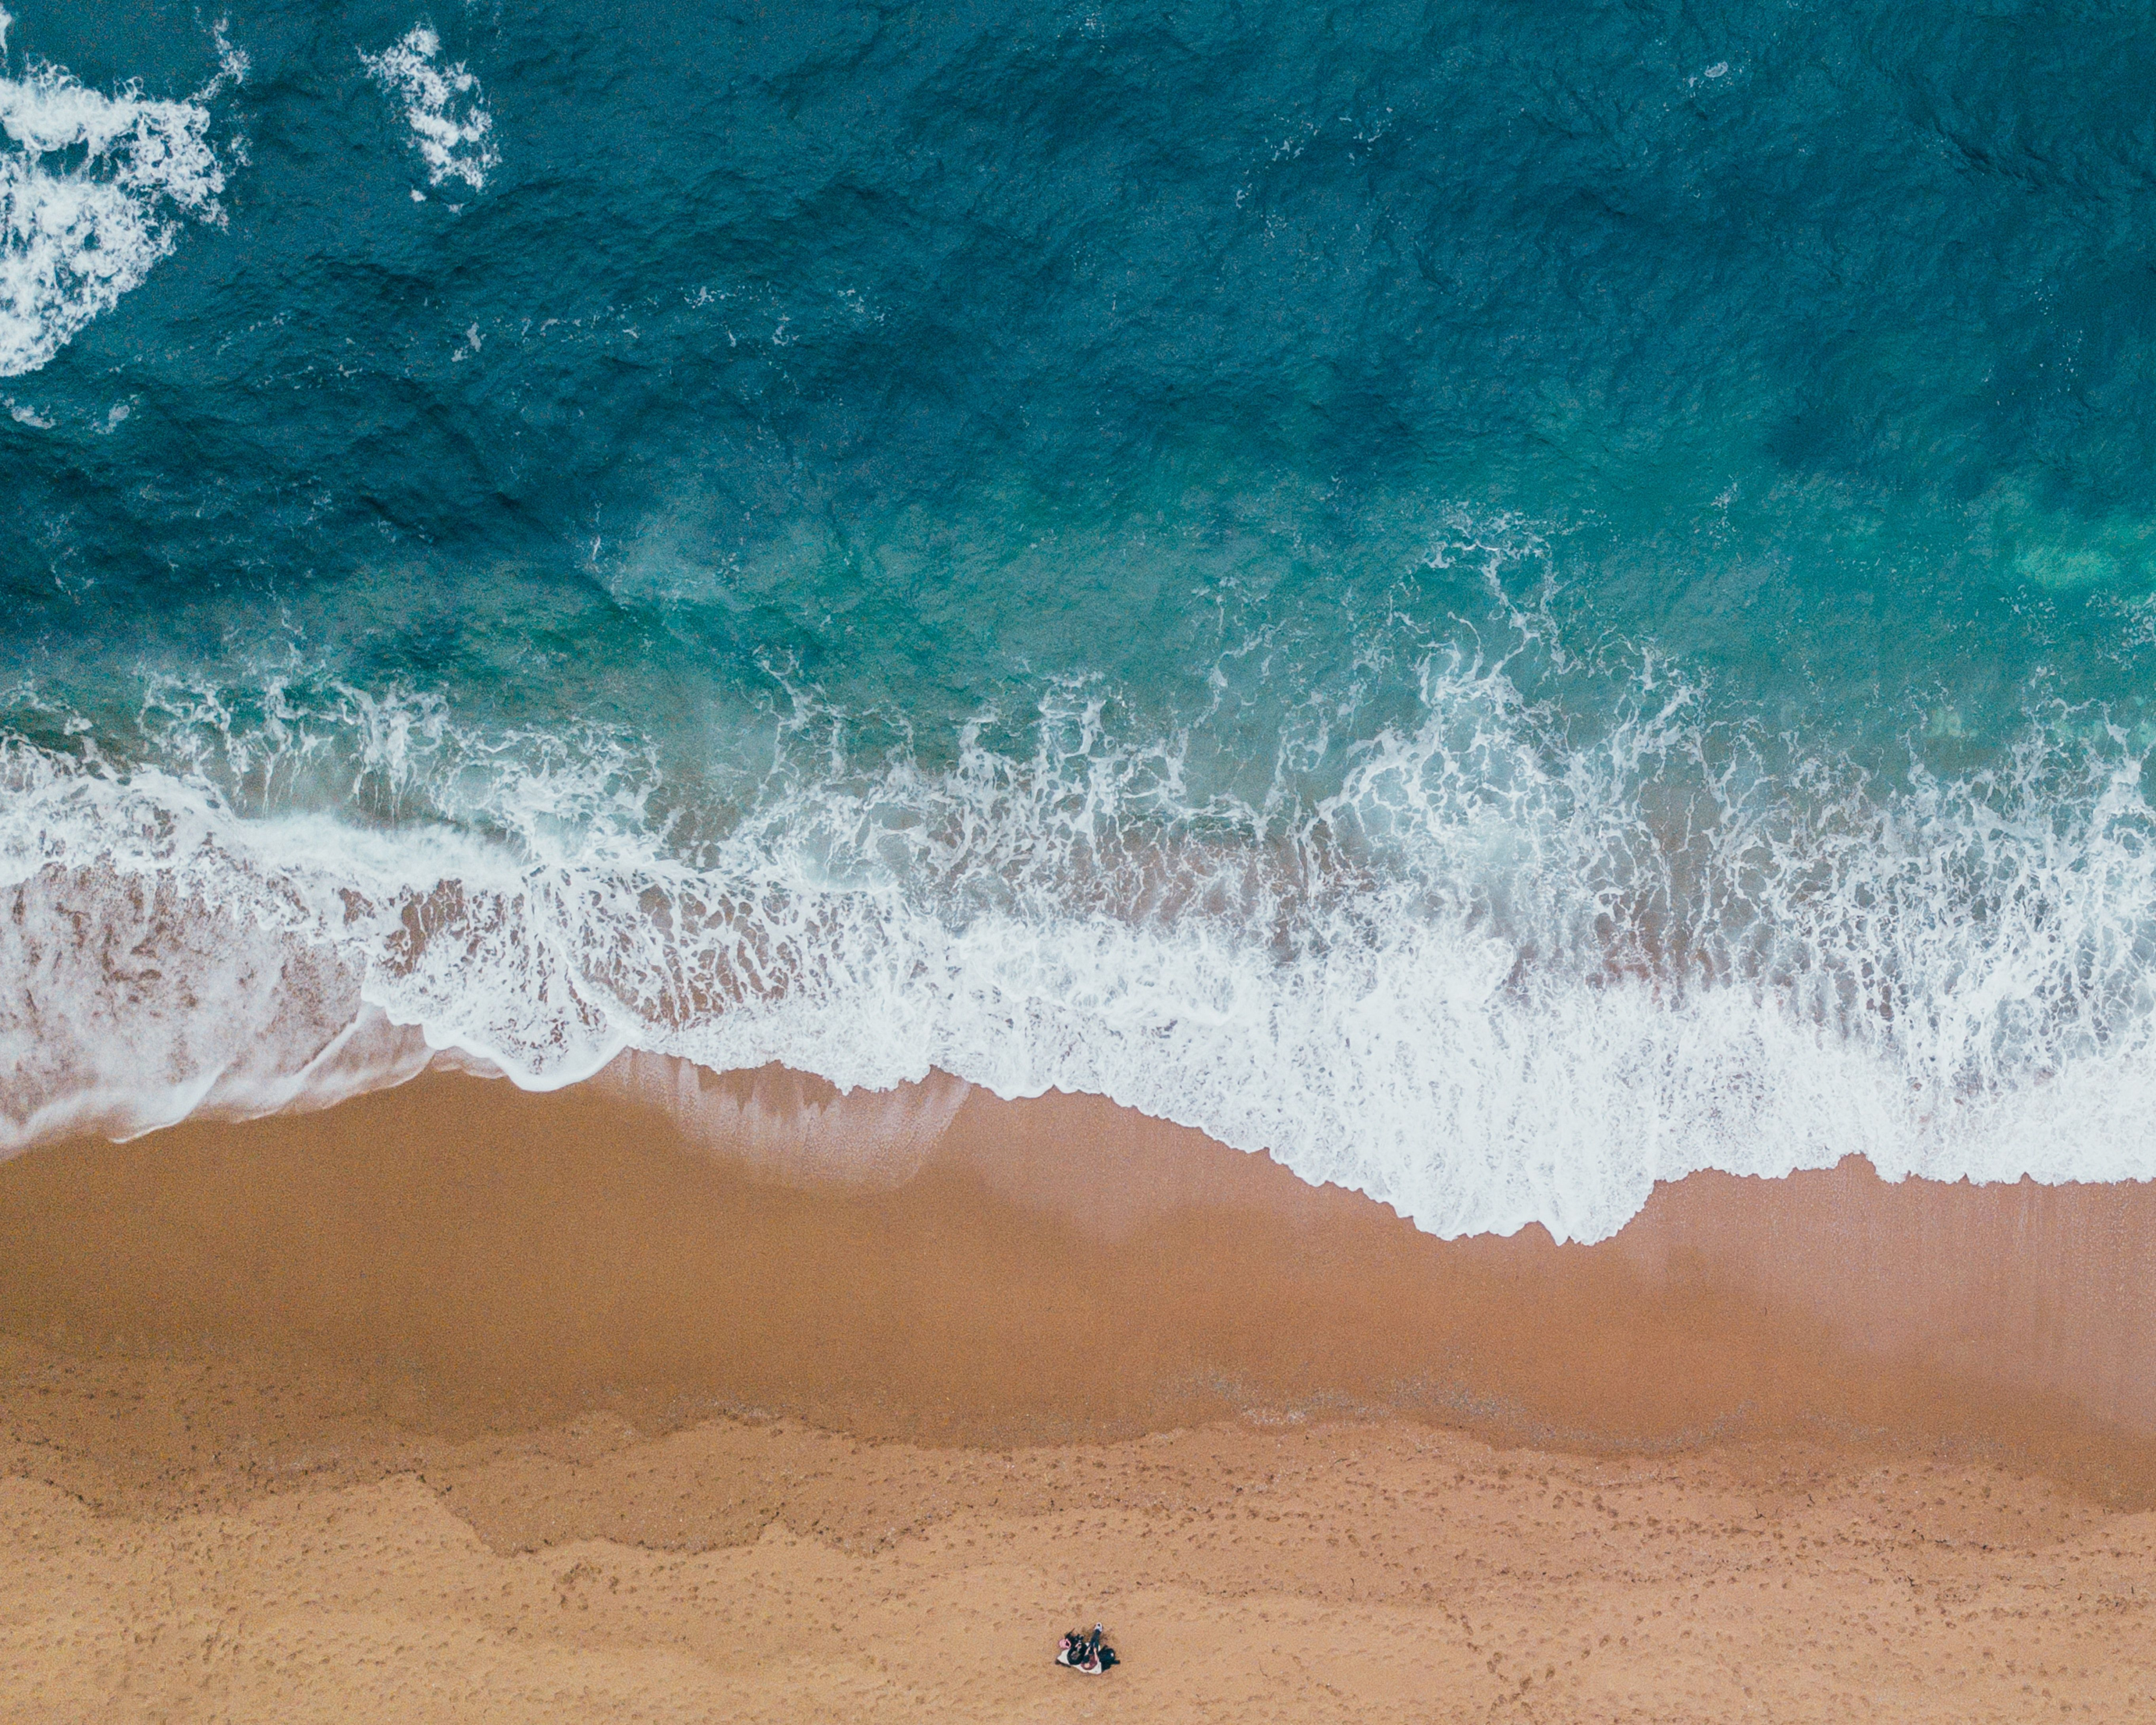 Drone View Aerial View Beach Sand And Water Hd Photo By Rich Lock Richlock On Unsplash Beach Pictures Sea Pictures Beach Photos